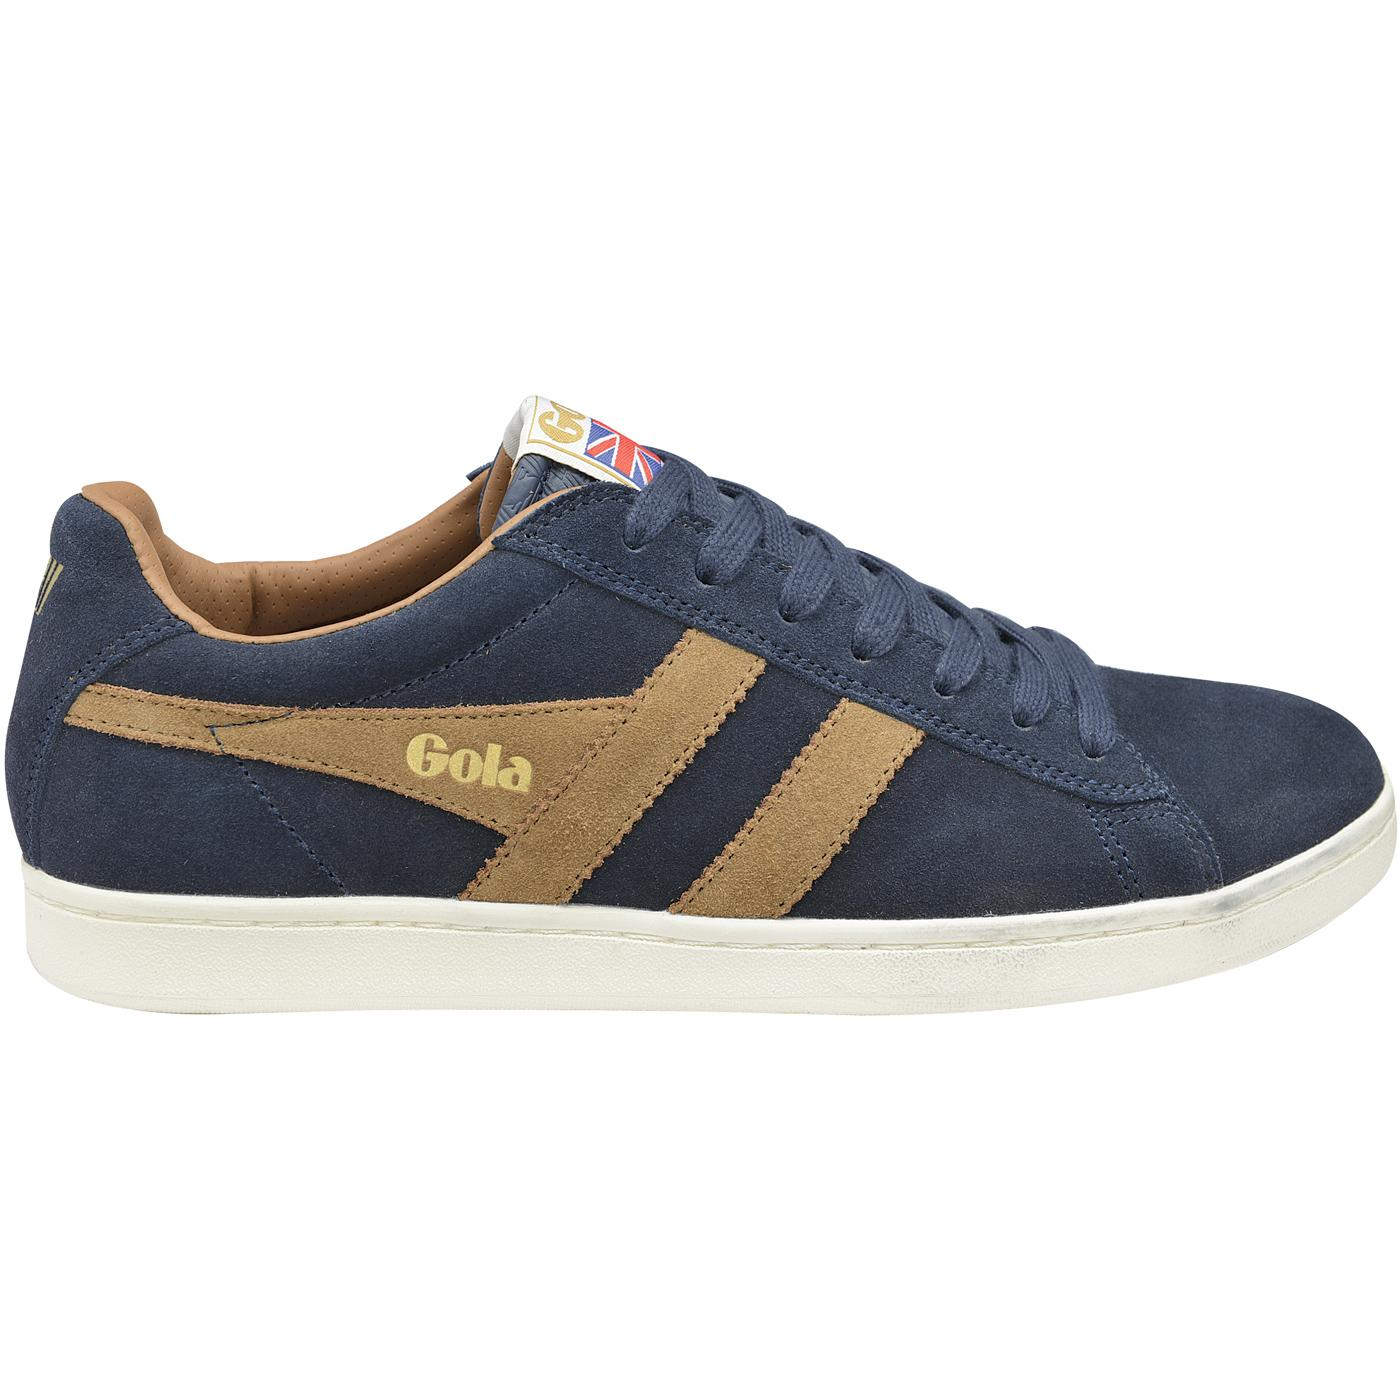 Equipe GOLA Retro 70s Archive Suede Trainers (N/T)